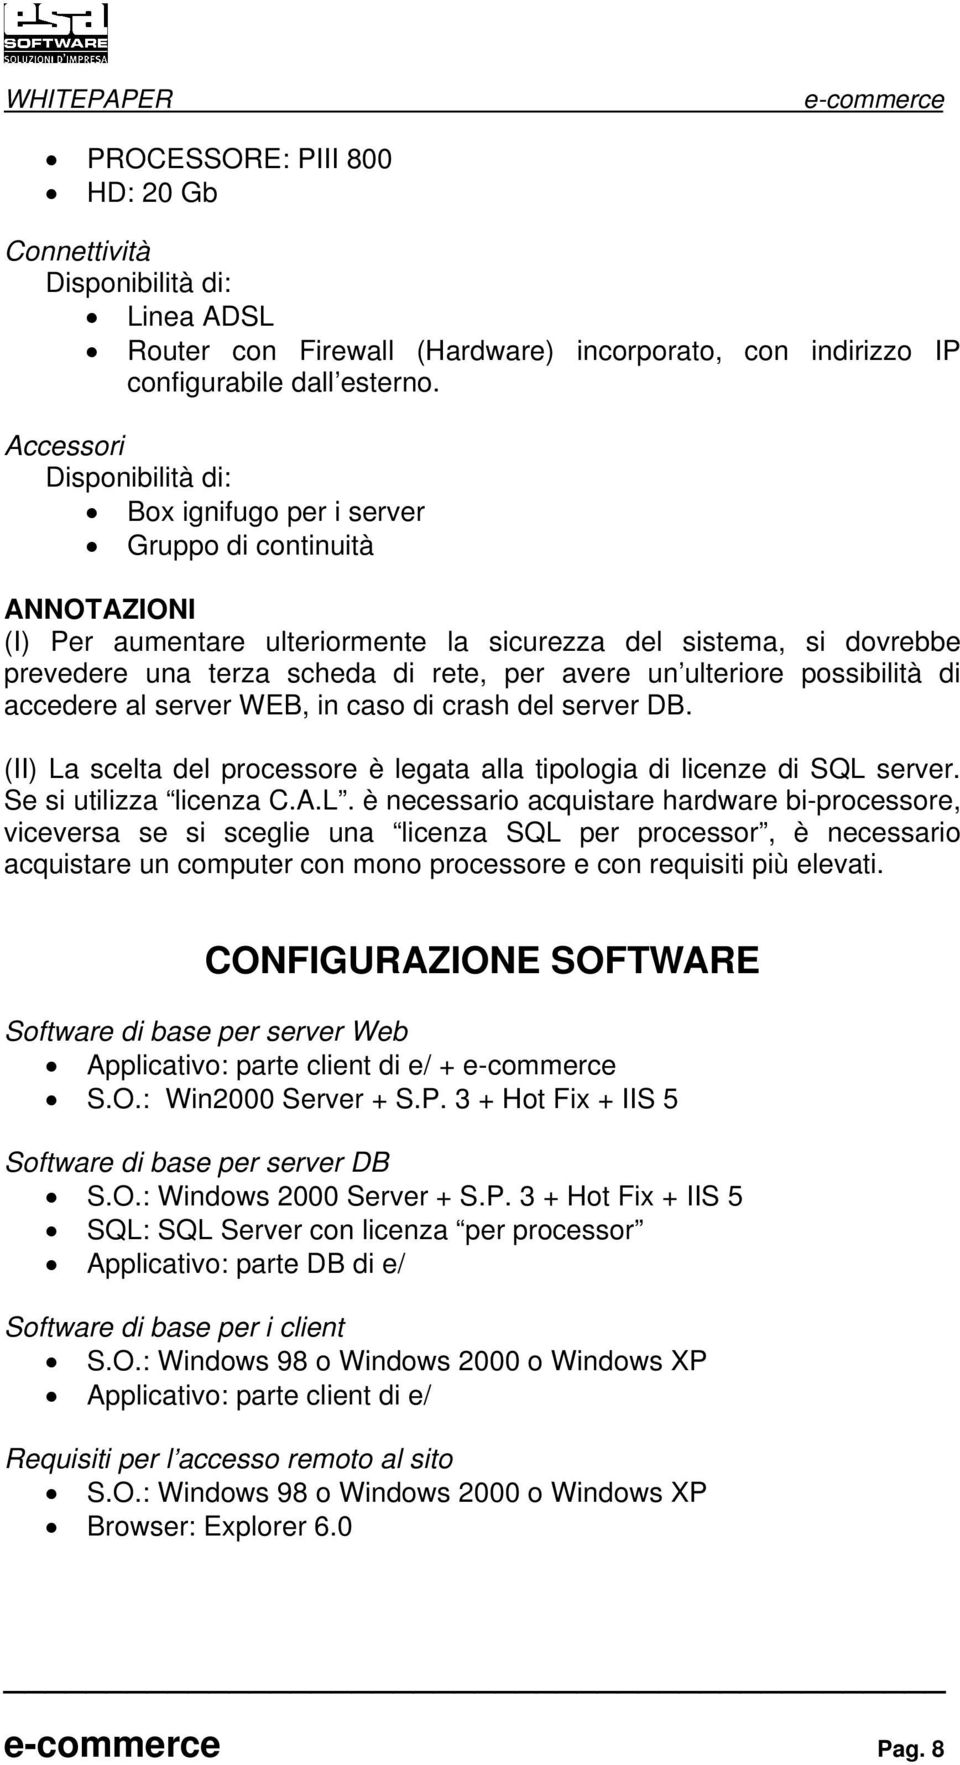 avere un ulteriore possibilità di accedere al server WEB, in caso di crash del server DB. (II) La